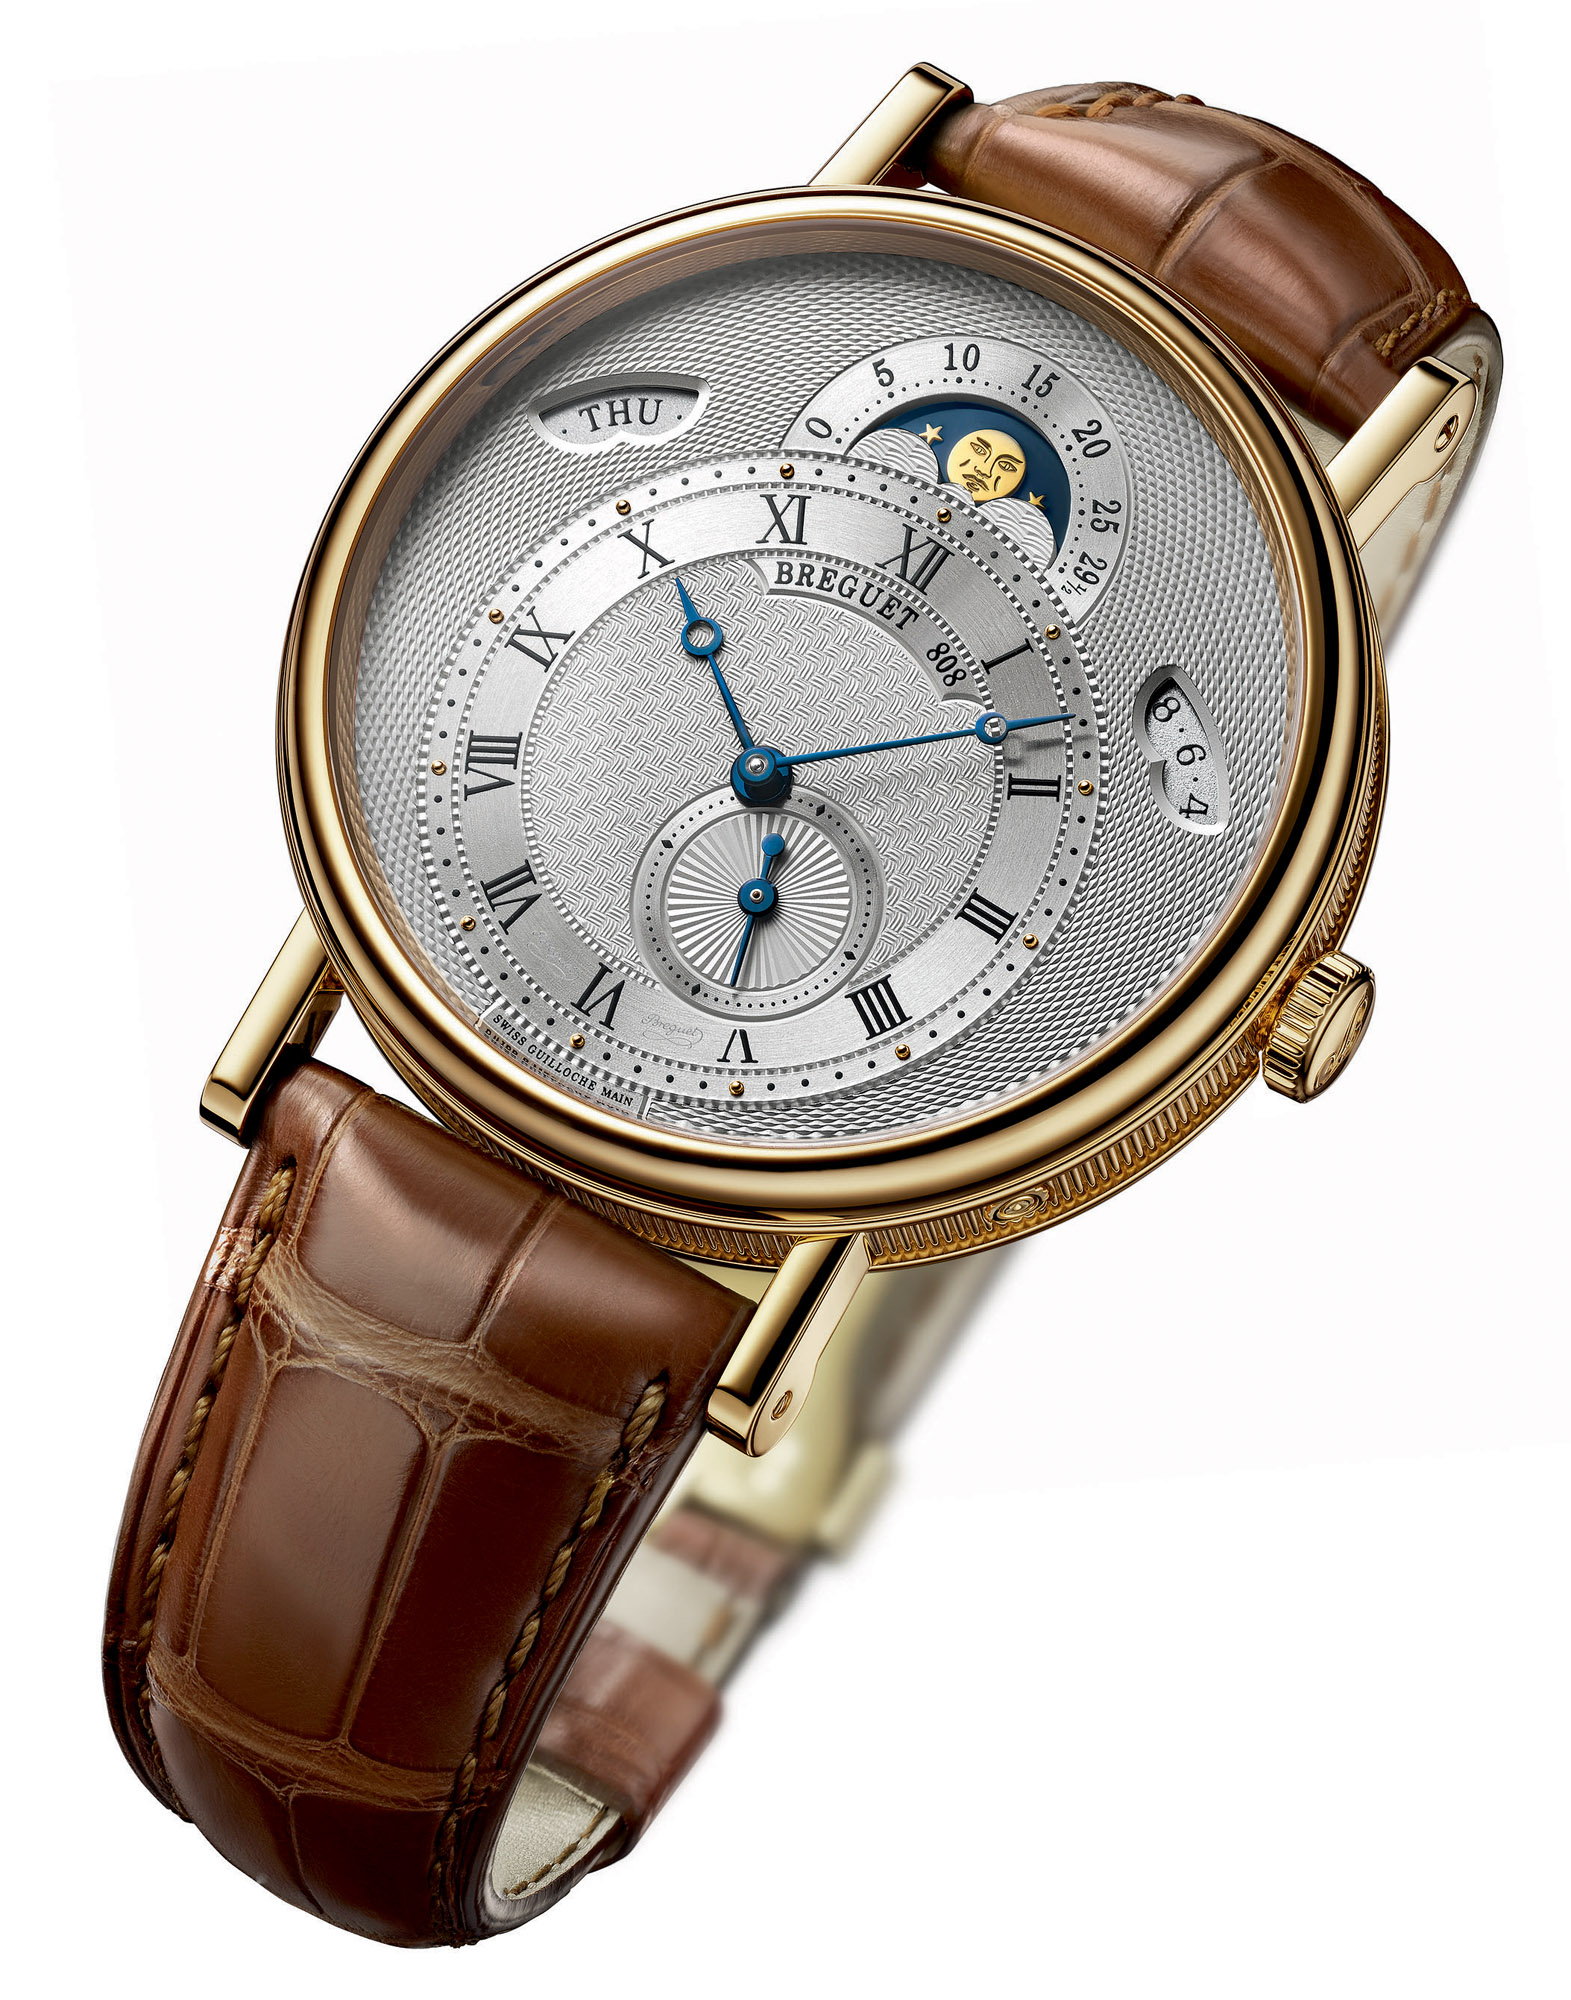 Breguet Classique 7337 (Silvered 18 Carat Gold Dial Hand-engraved)